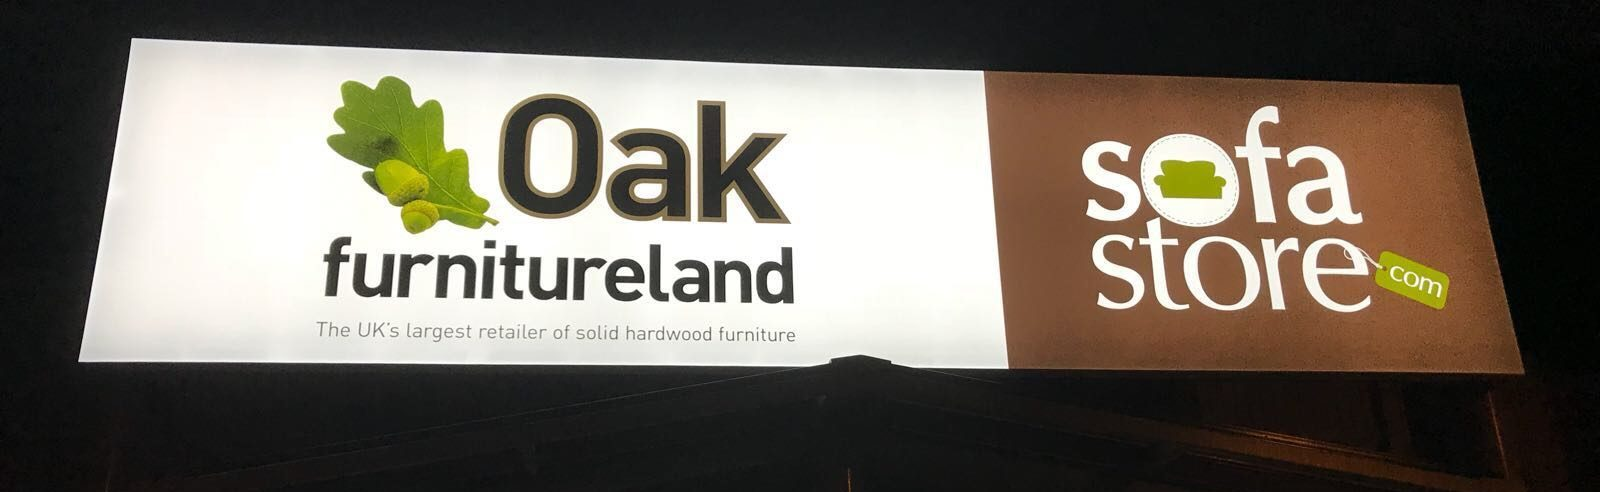 large outdoor signage for retail